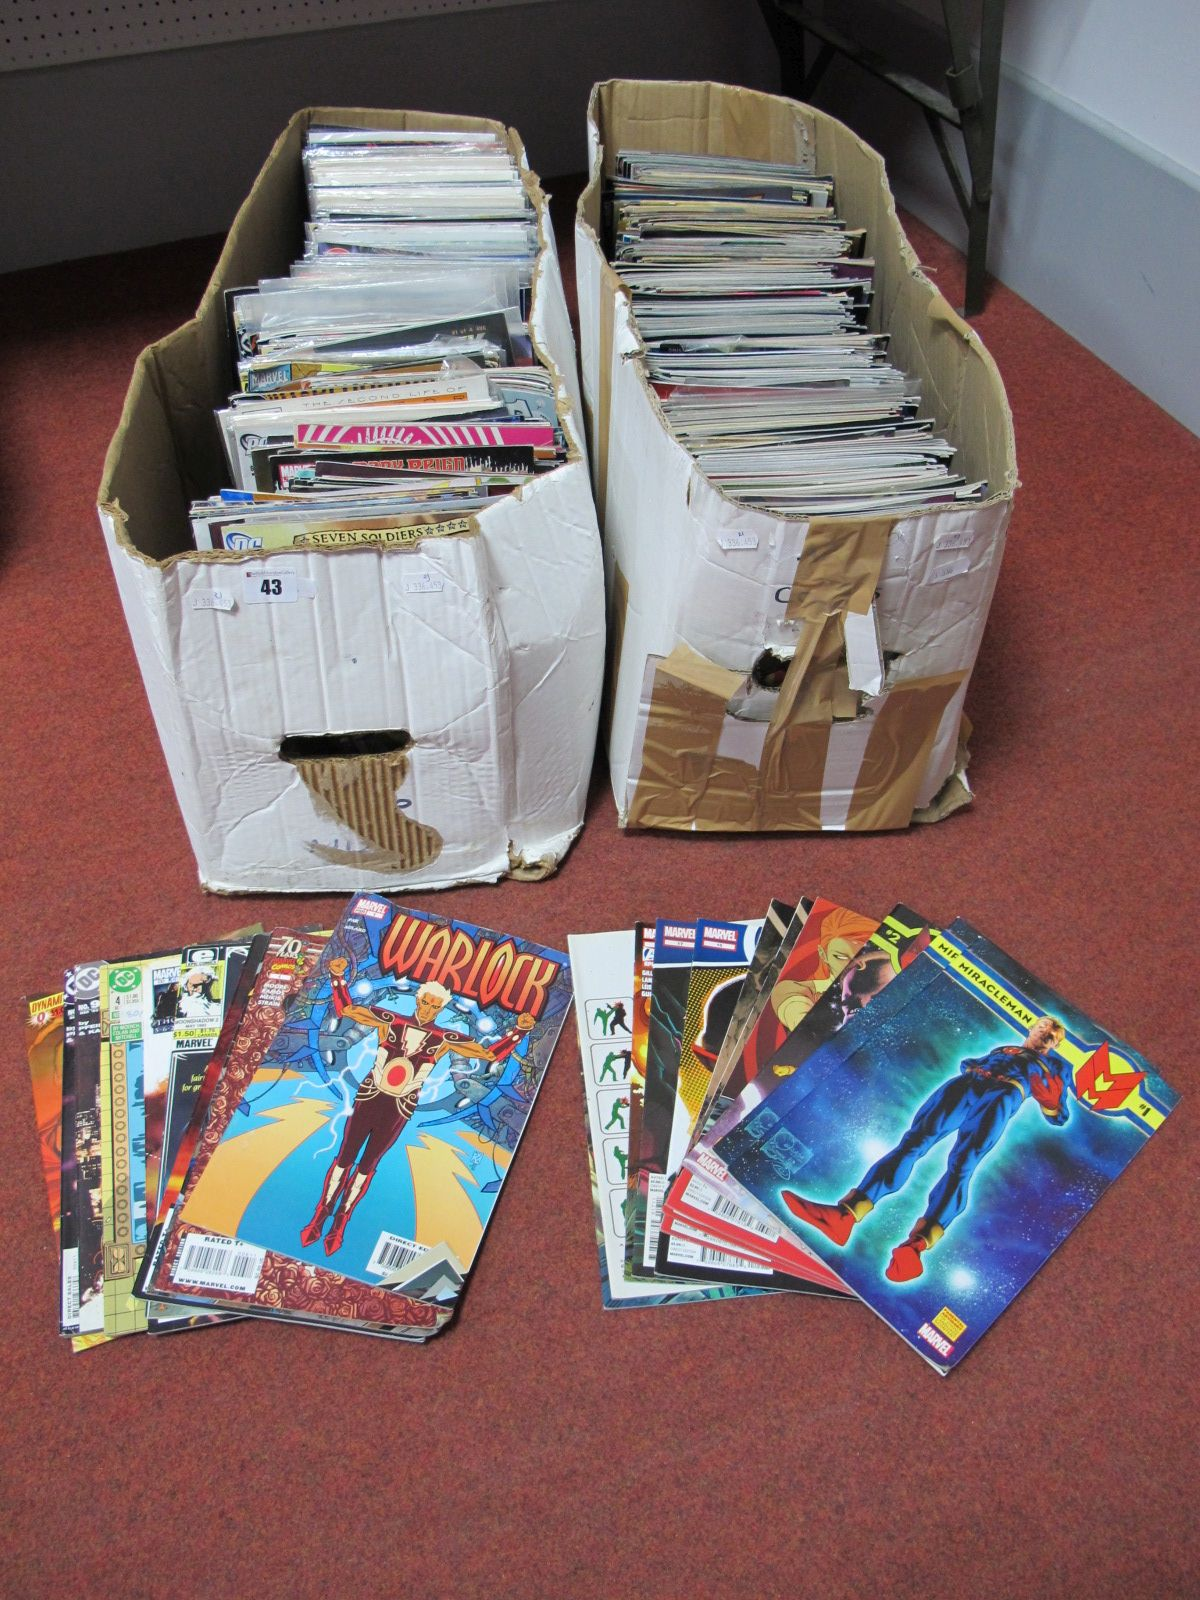 Lot 43 - In Excess of Six Hundred Comics, by DC, Marvel, Tangent, Wildstorm including Avengers Arena.